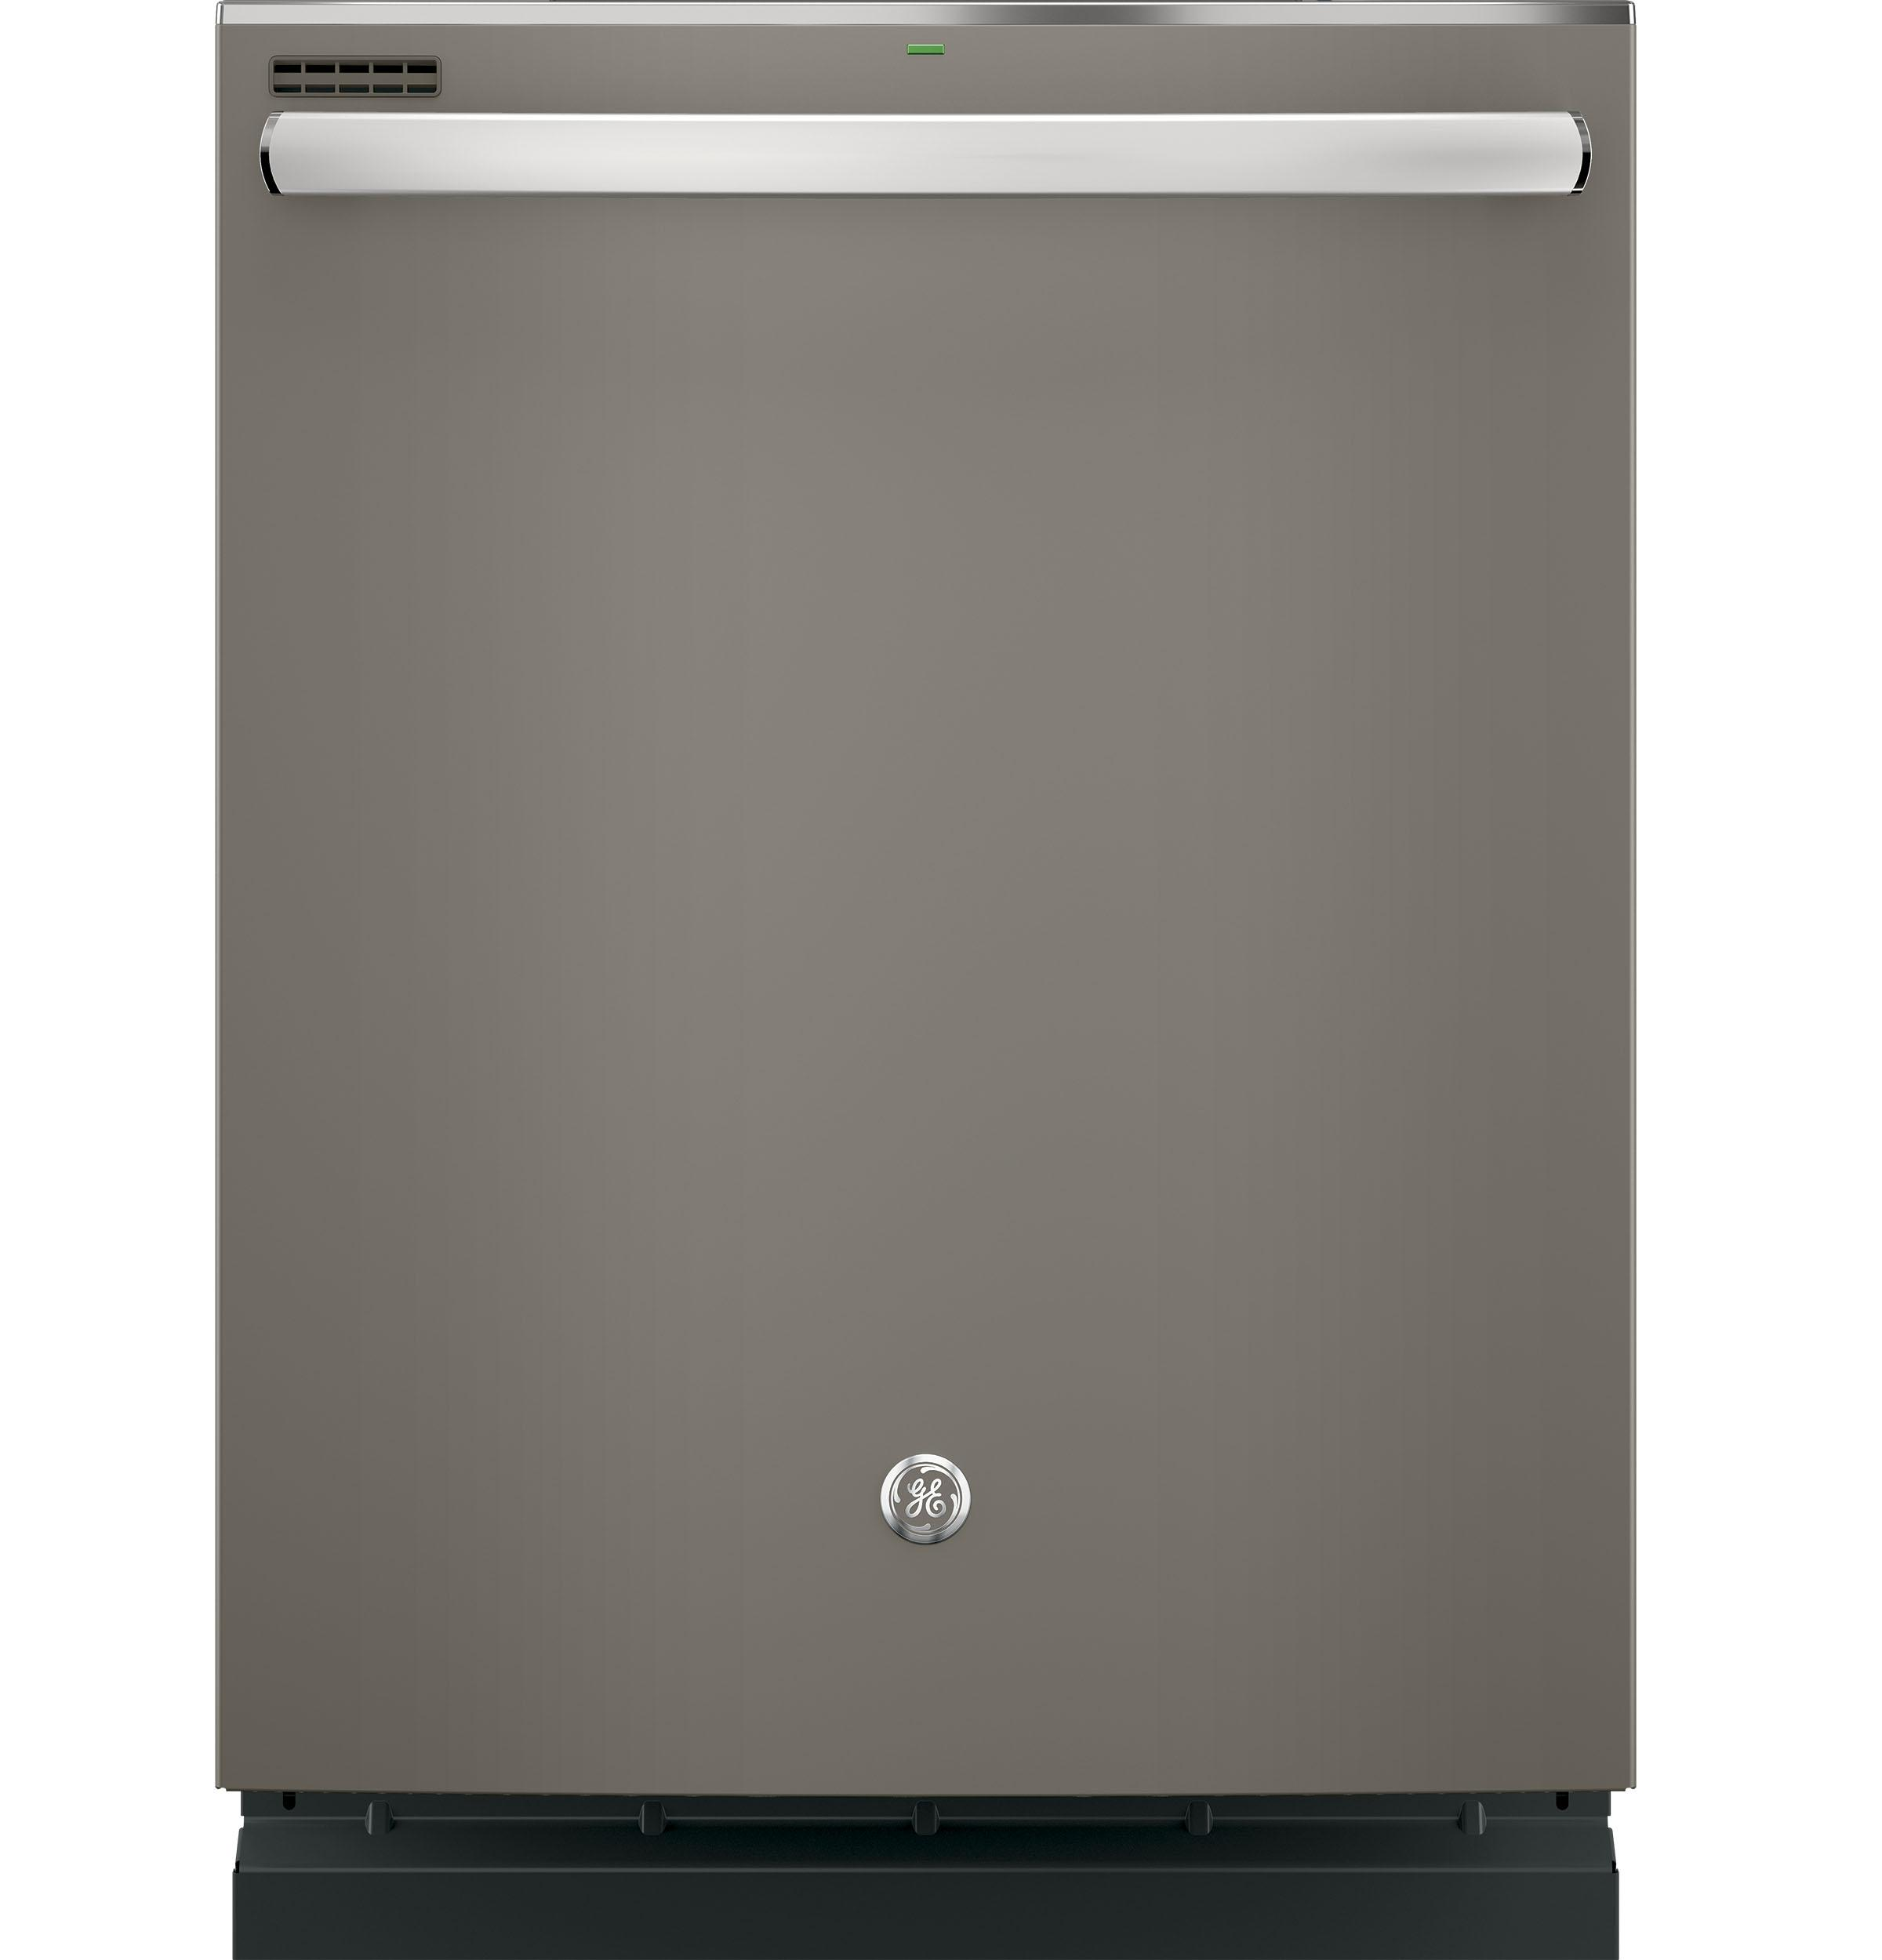 Ge Hybrid Stainless Steel Interior Dishwasher With Hidden Controls Built In Dishwashers